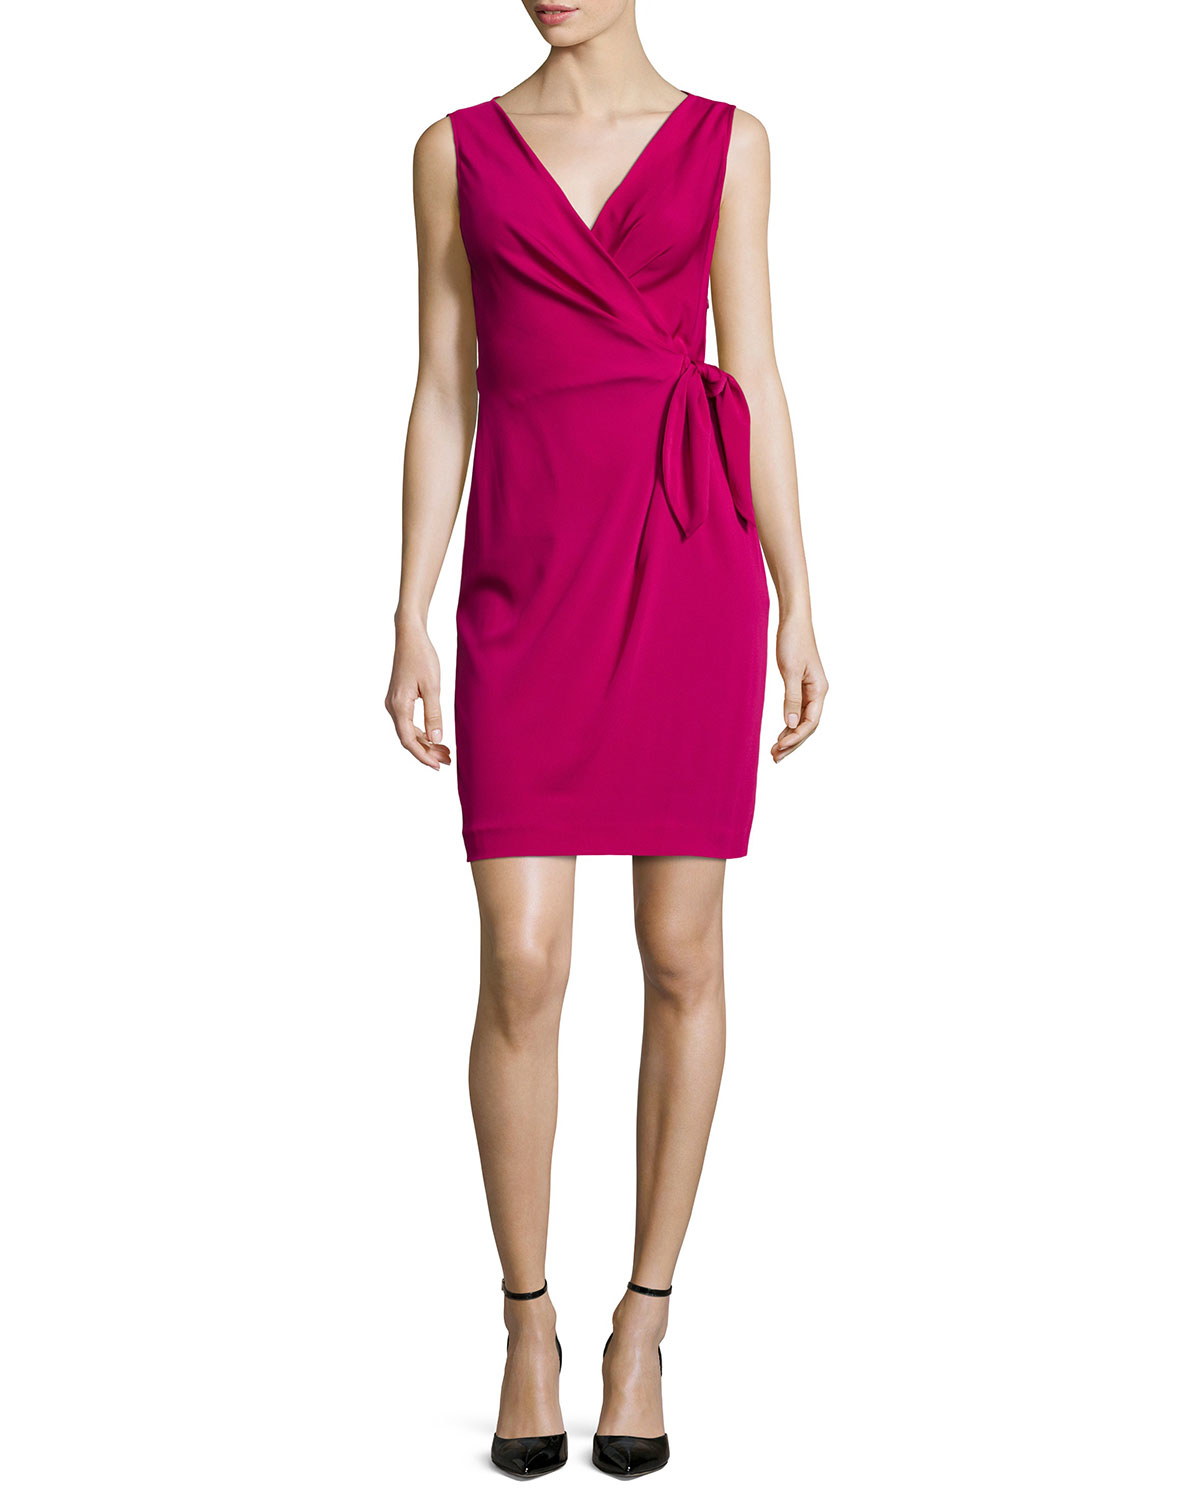 Diane von furstenberg sleeveless bella wrap dress in for Diane von furstenberg clothes